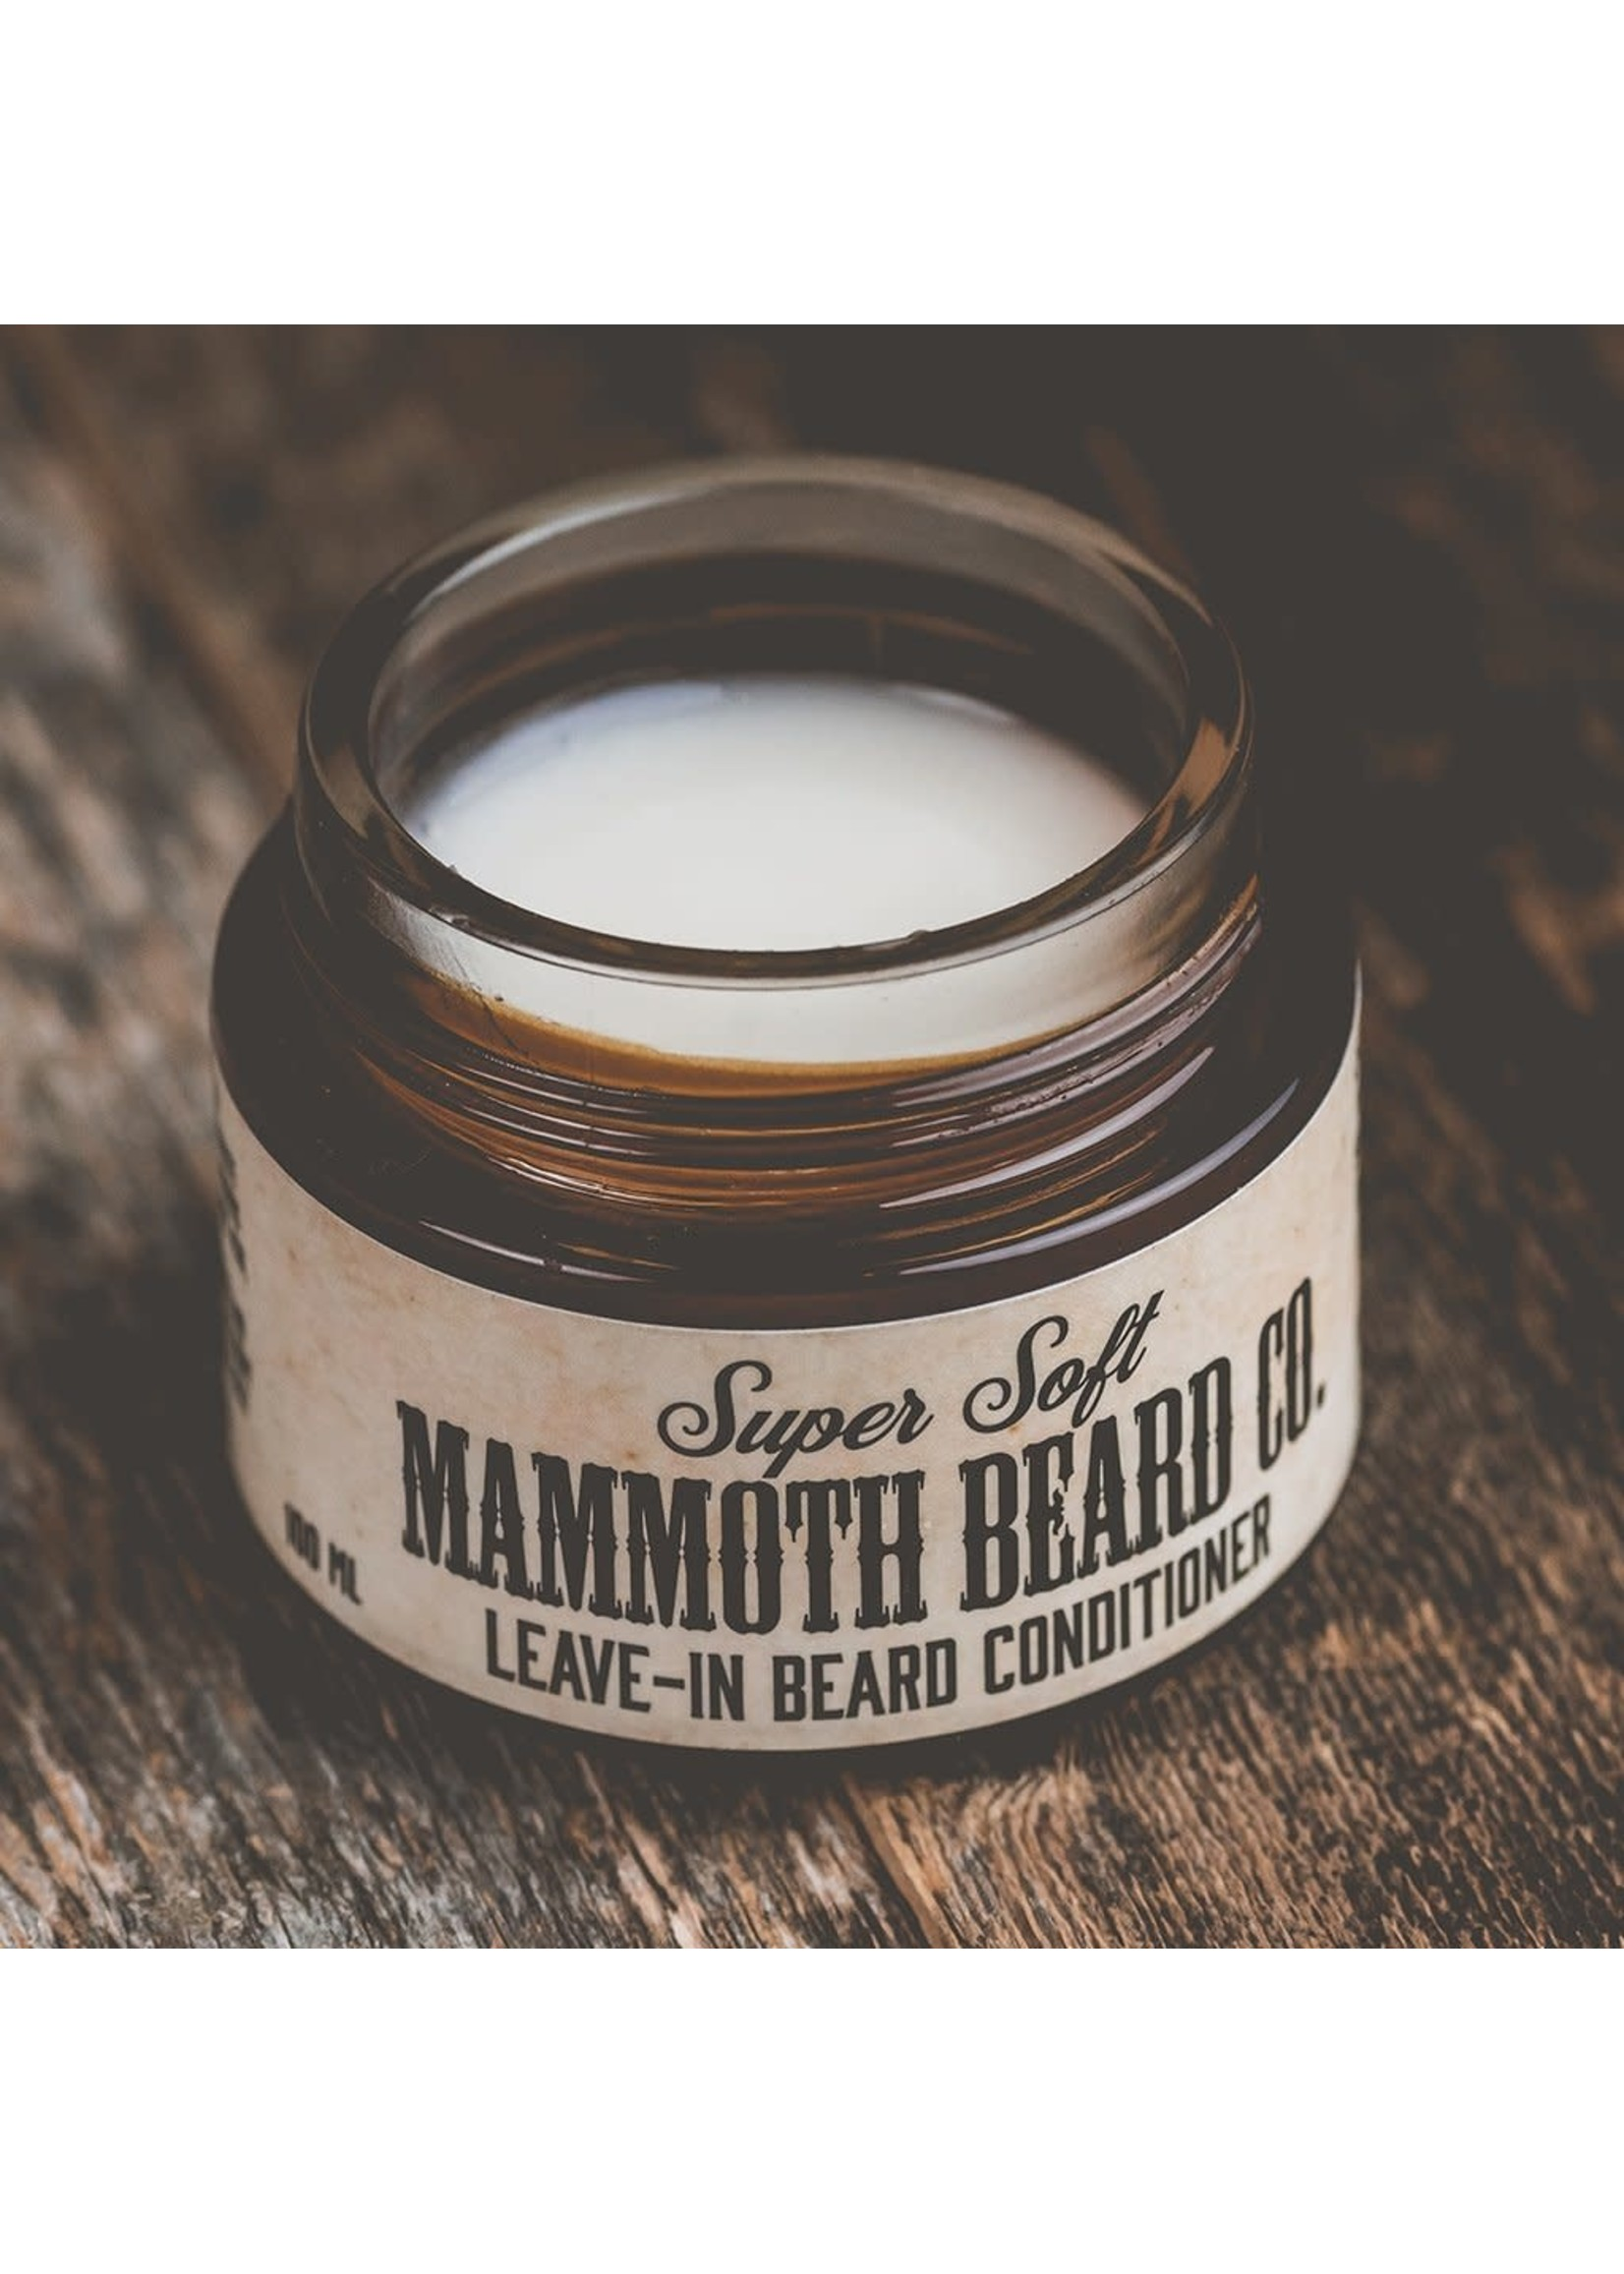 Mammoth Beard Co. Super Soft Leave-In Conditioner